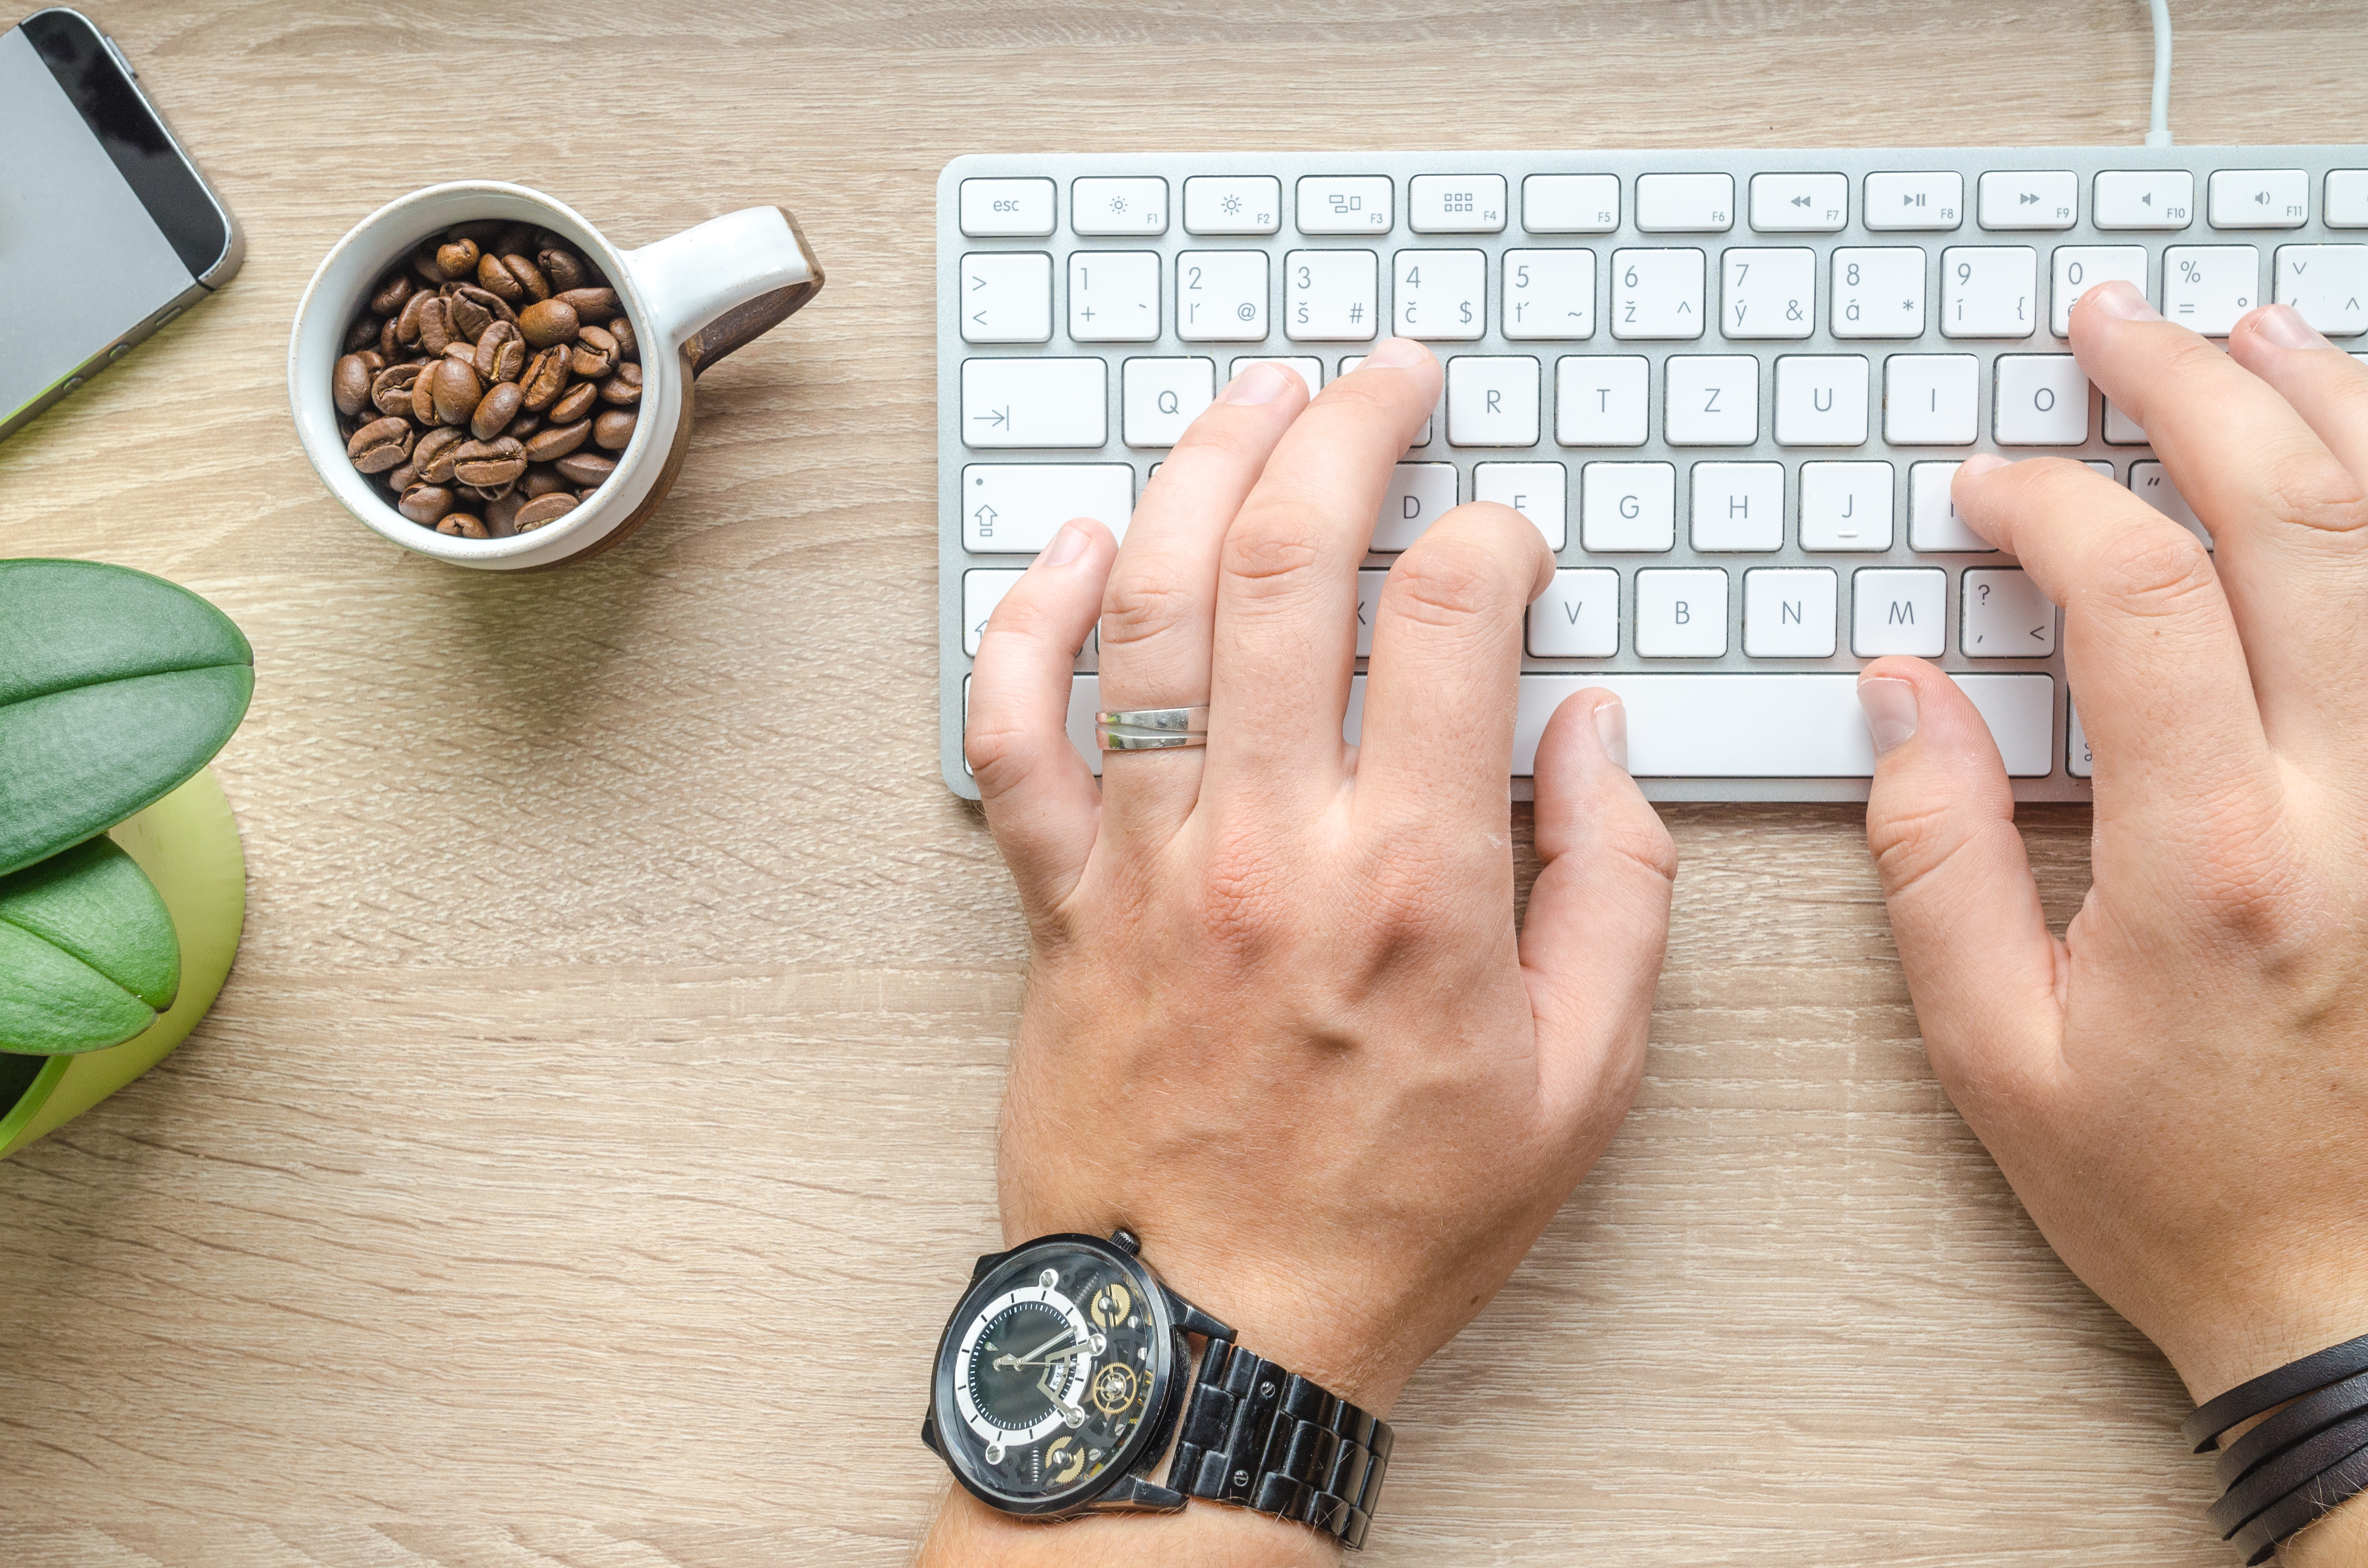 Person Using Silver Apple Magic Keyboard Beside of White Ceramic Mug With Coffee Beans